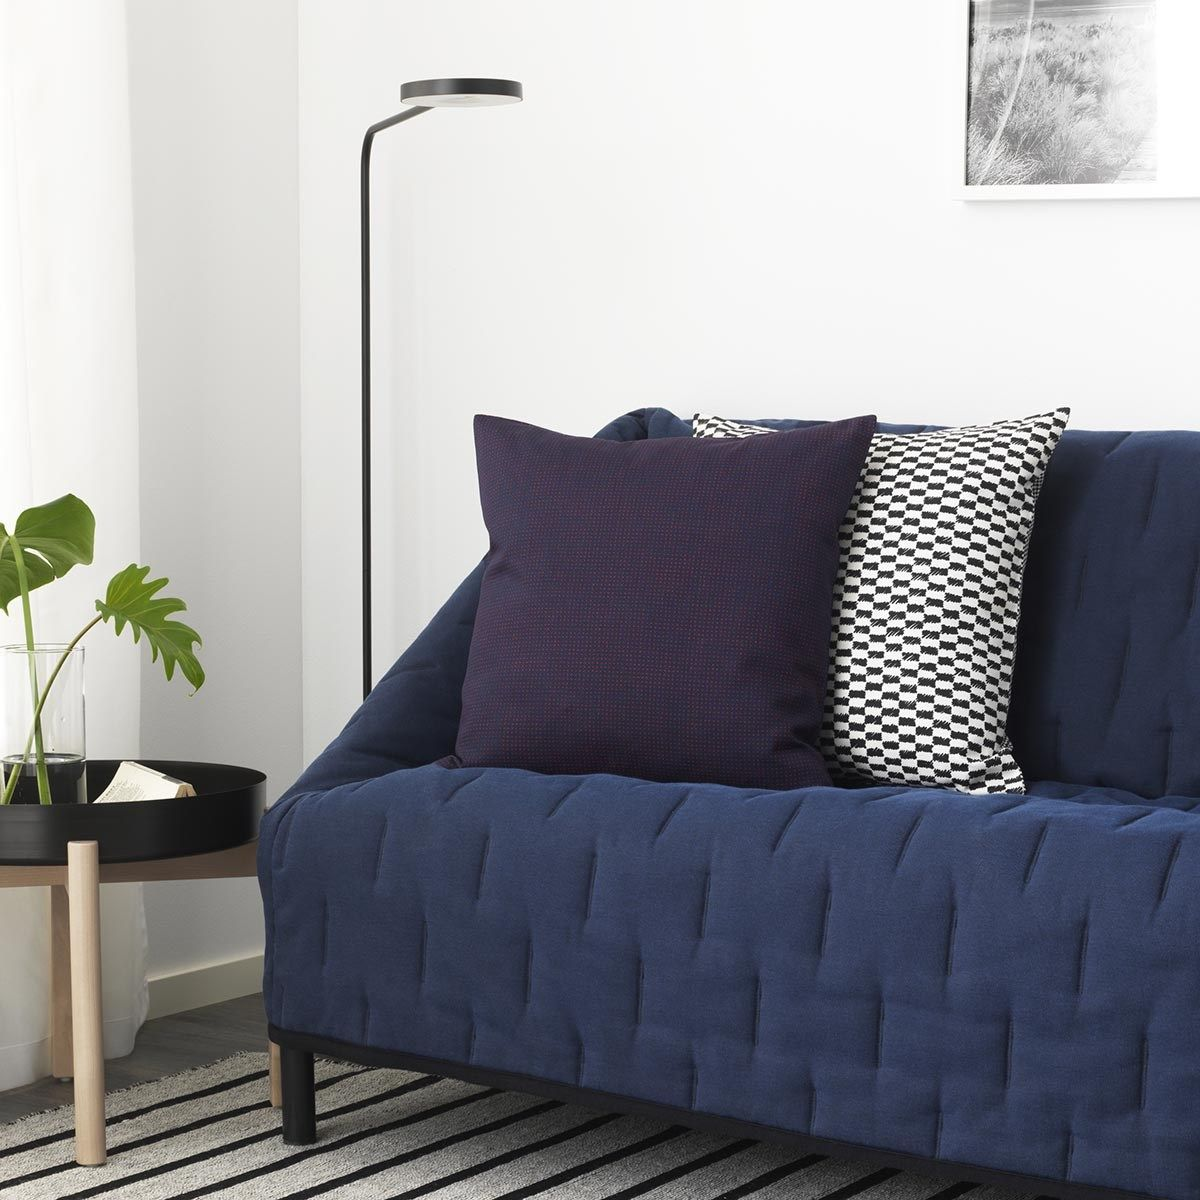 First look: IKEA x HAY YPPERLIG collection | Urlaub